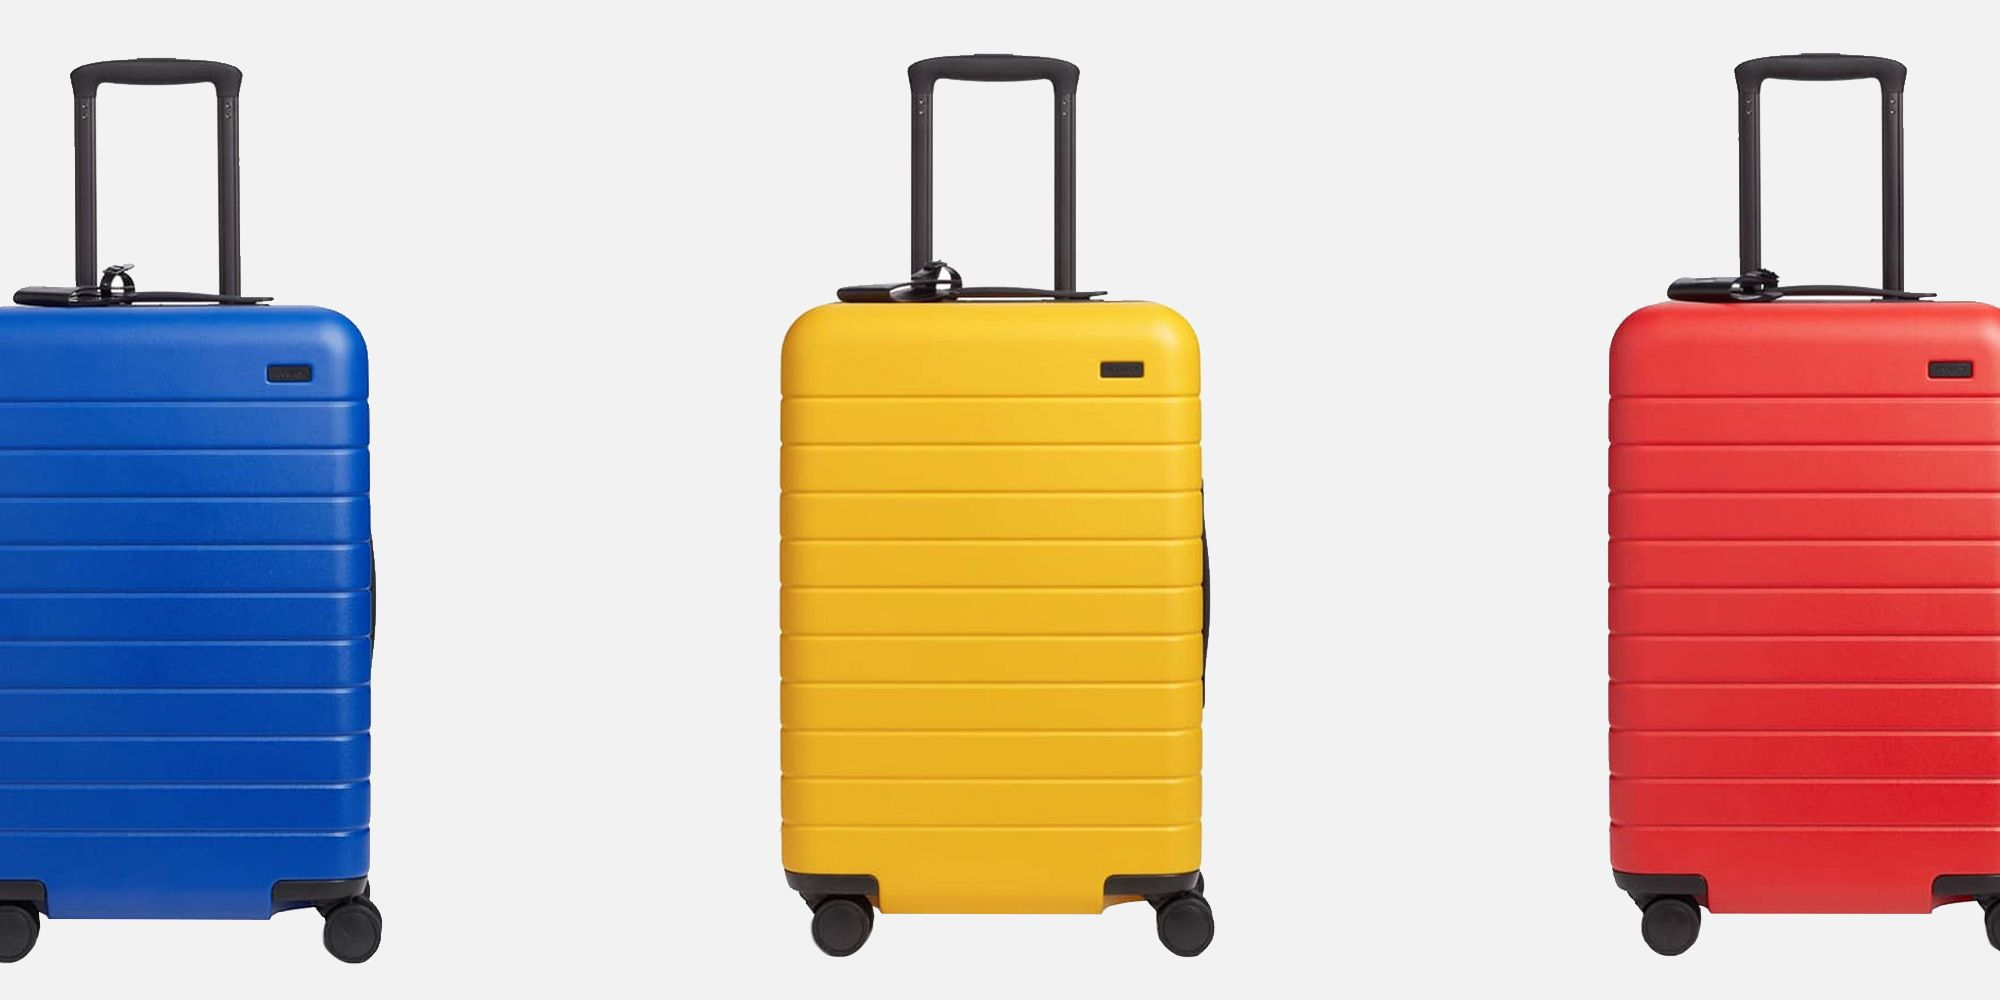 eb22c4bde5 Away Just Released 3 Bright New Suitcase Colors Exclusively at Nordstrom